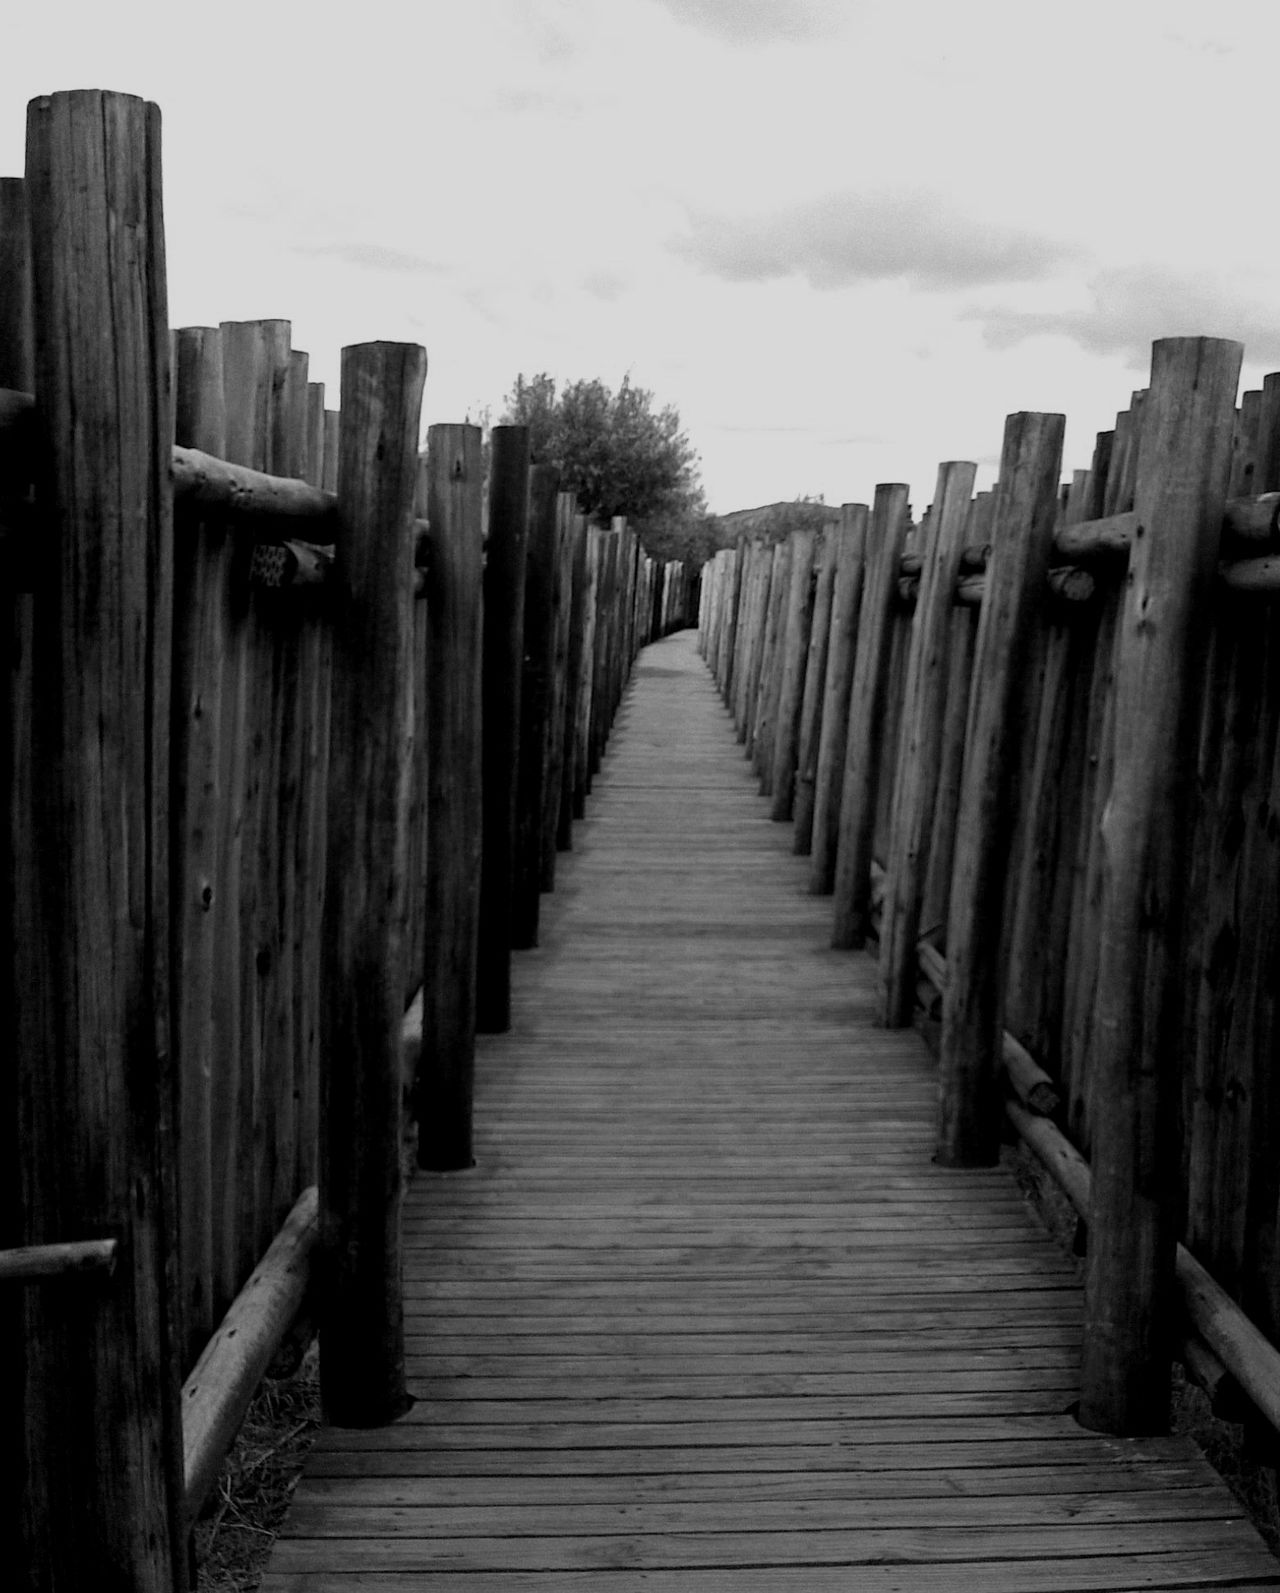 Boardwalk Bridge Built Structure In A Row Pathway The Way Forward Wood - Material Wooden Wooden Pathway Wooden Post First Eyeem Photo